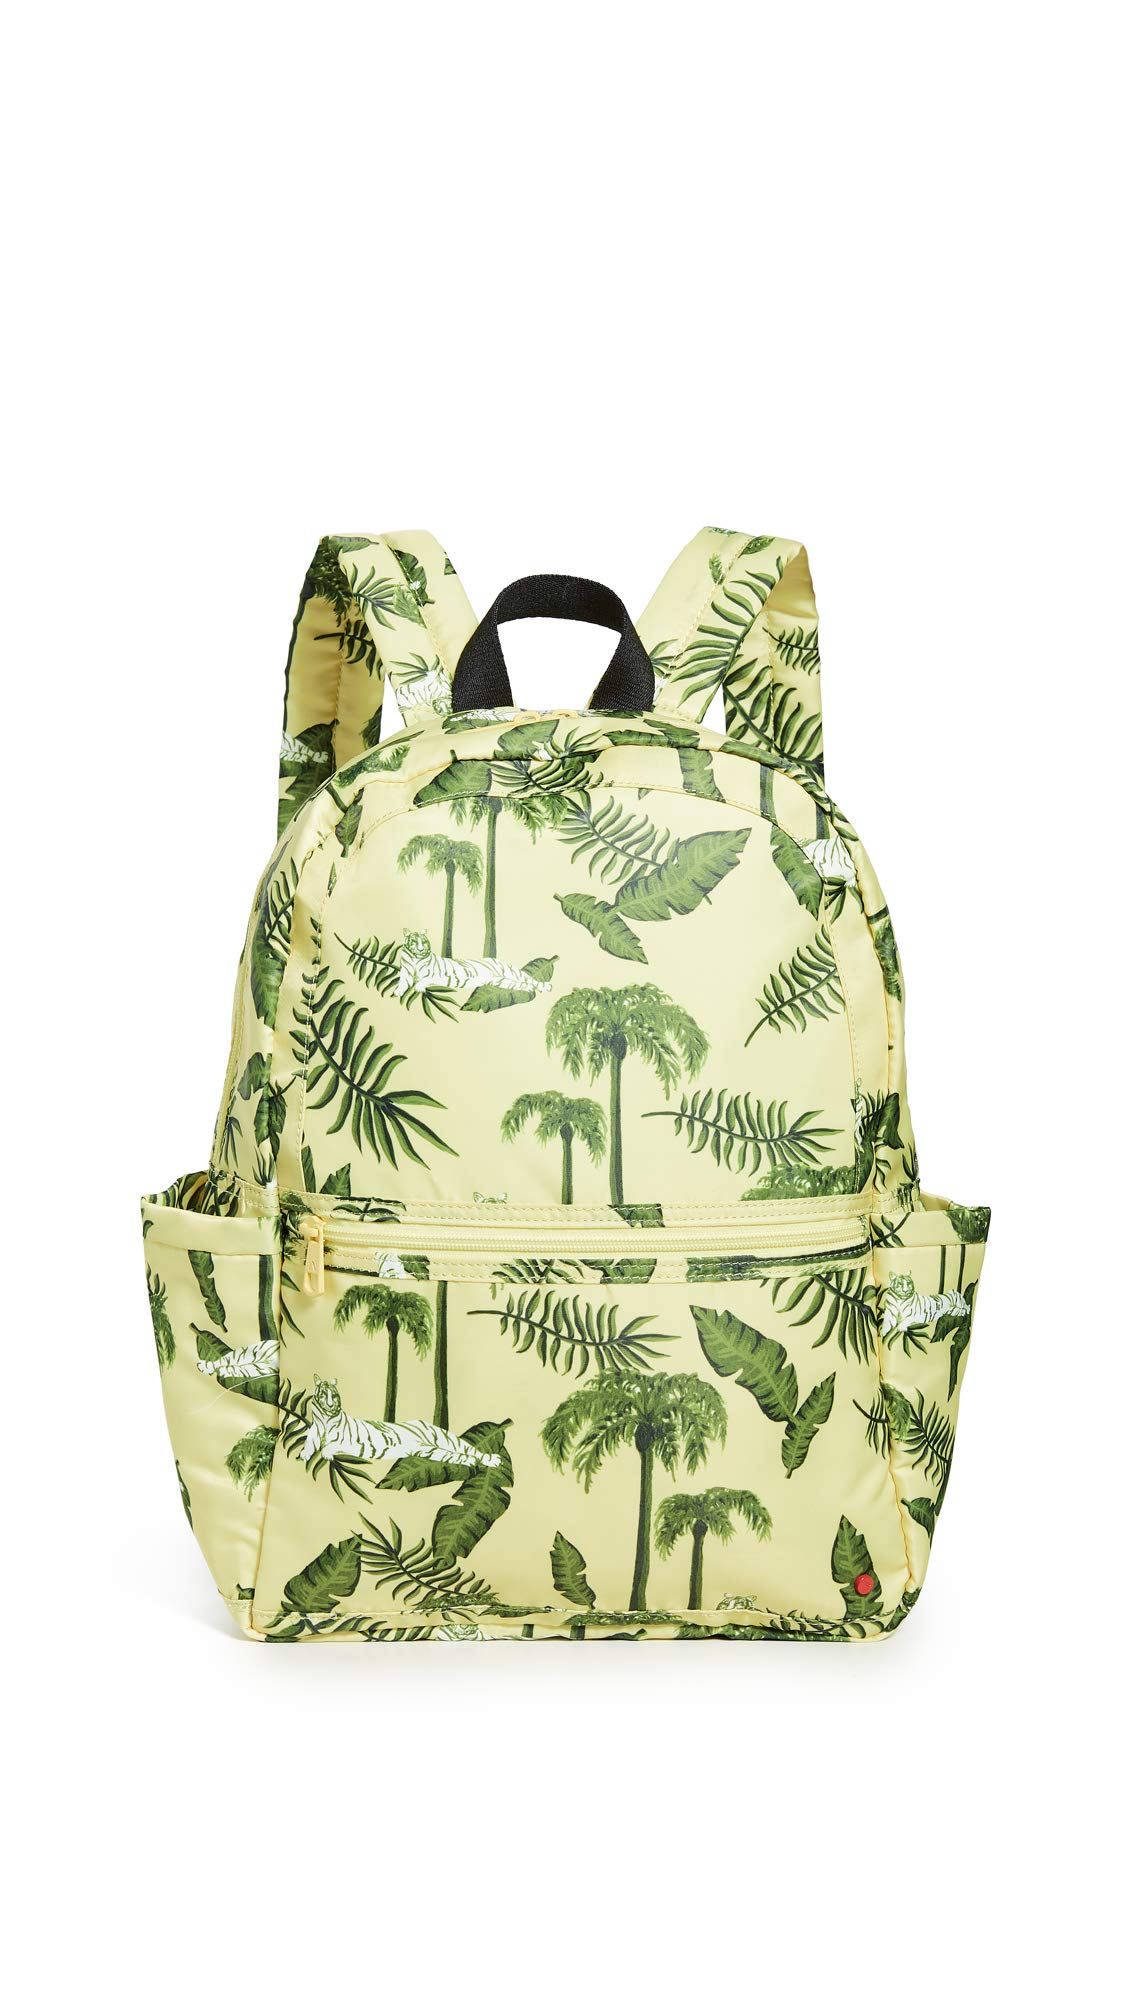 STATE Women's Kane Backpack, Yellow, One Size by STATE Bags